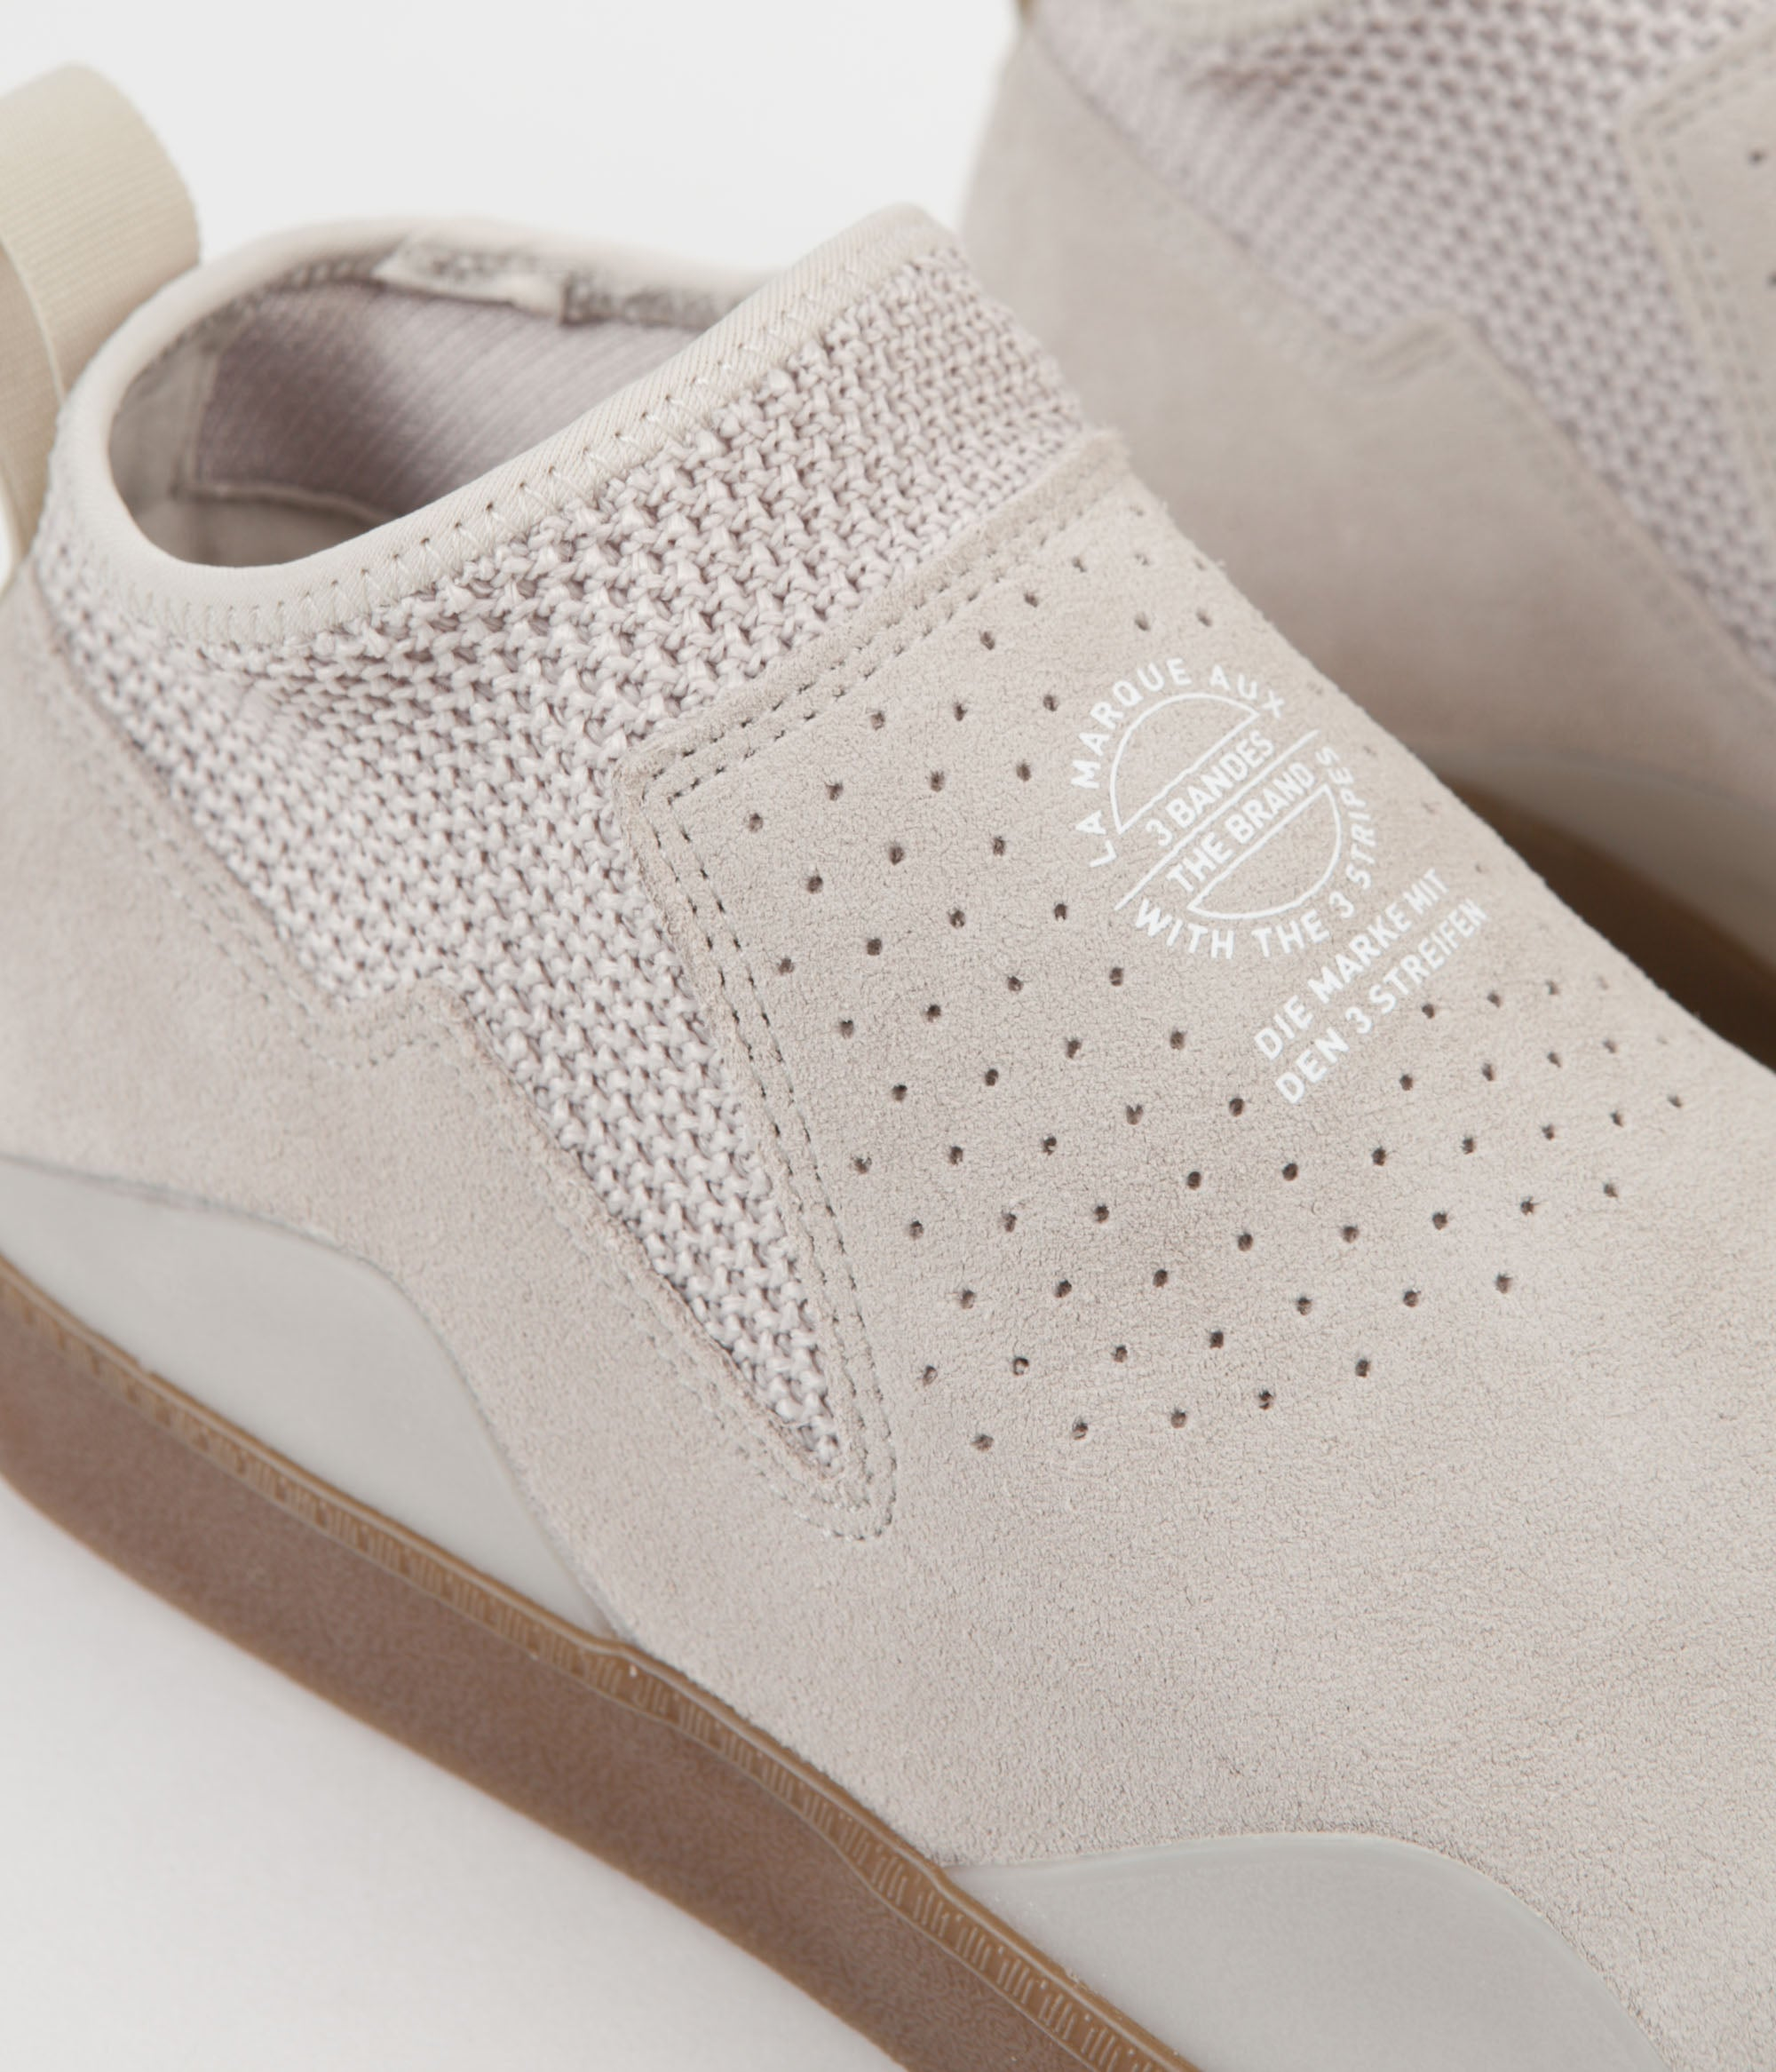 Adidas 3ST.002 Shoes - Clear Brown / White / Gum